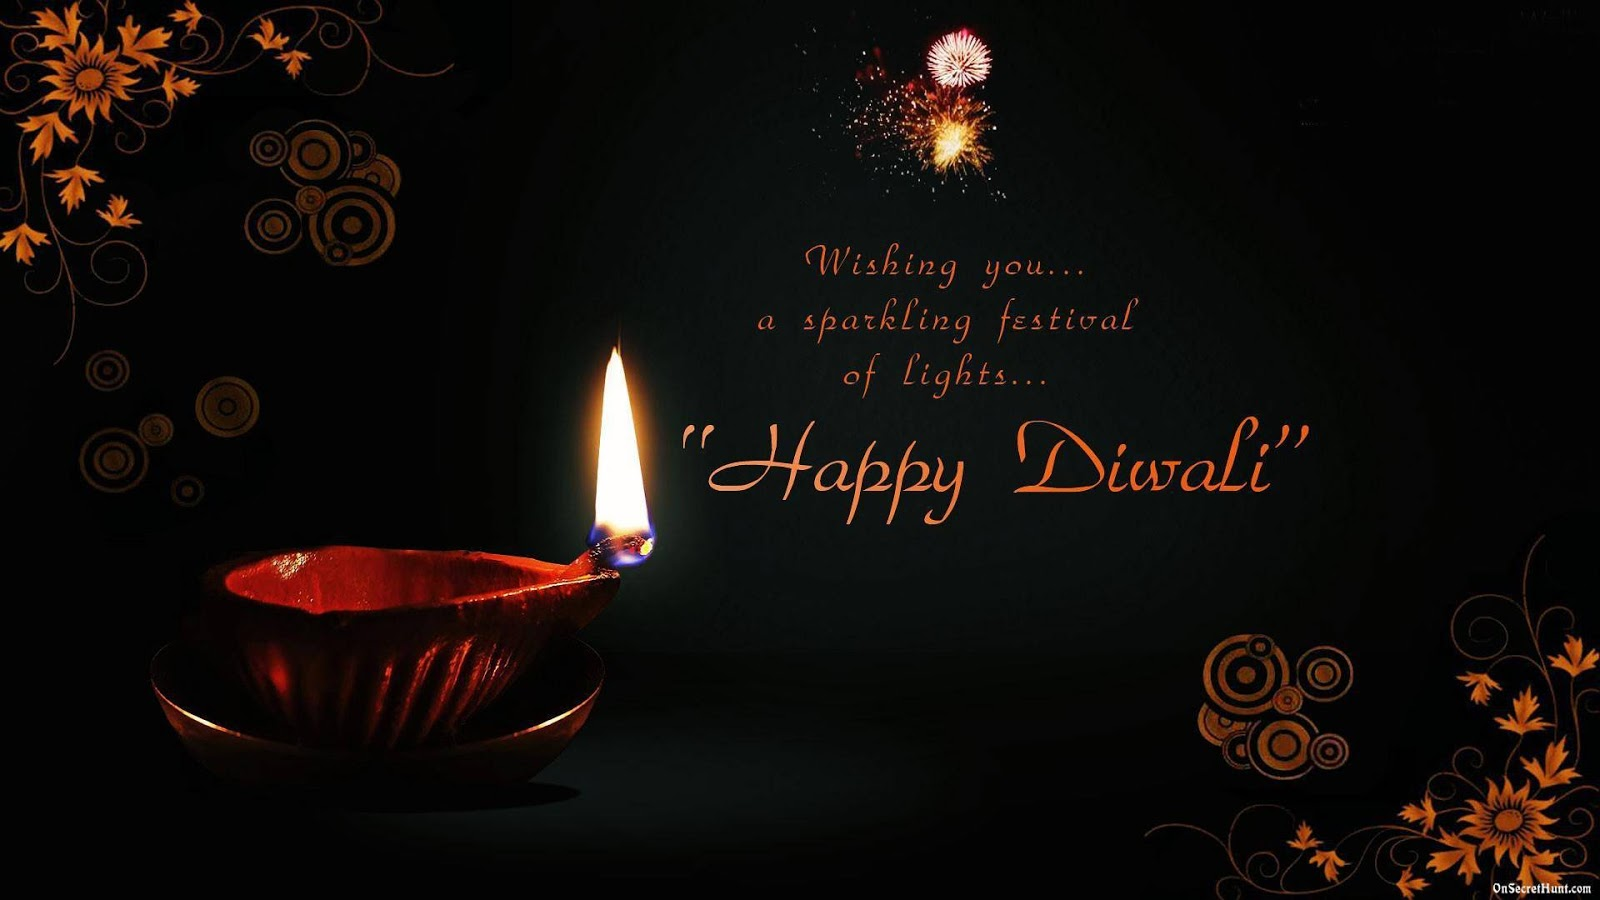 Happy Diwali 2018 Greetings